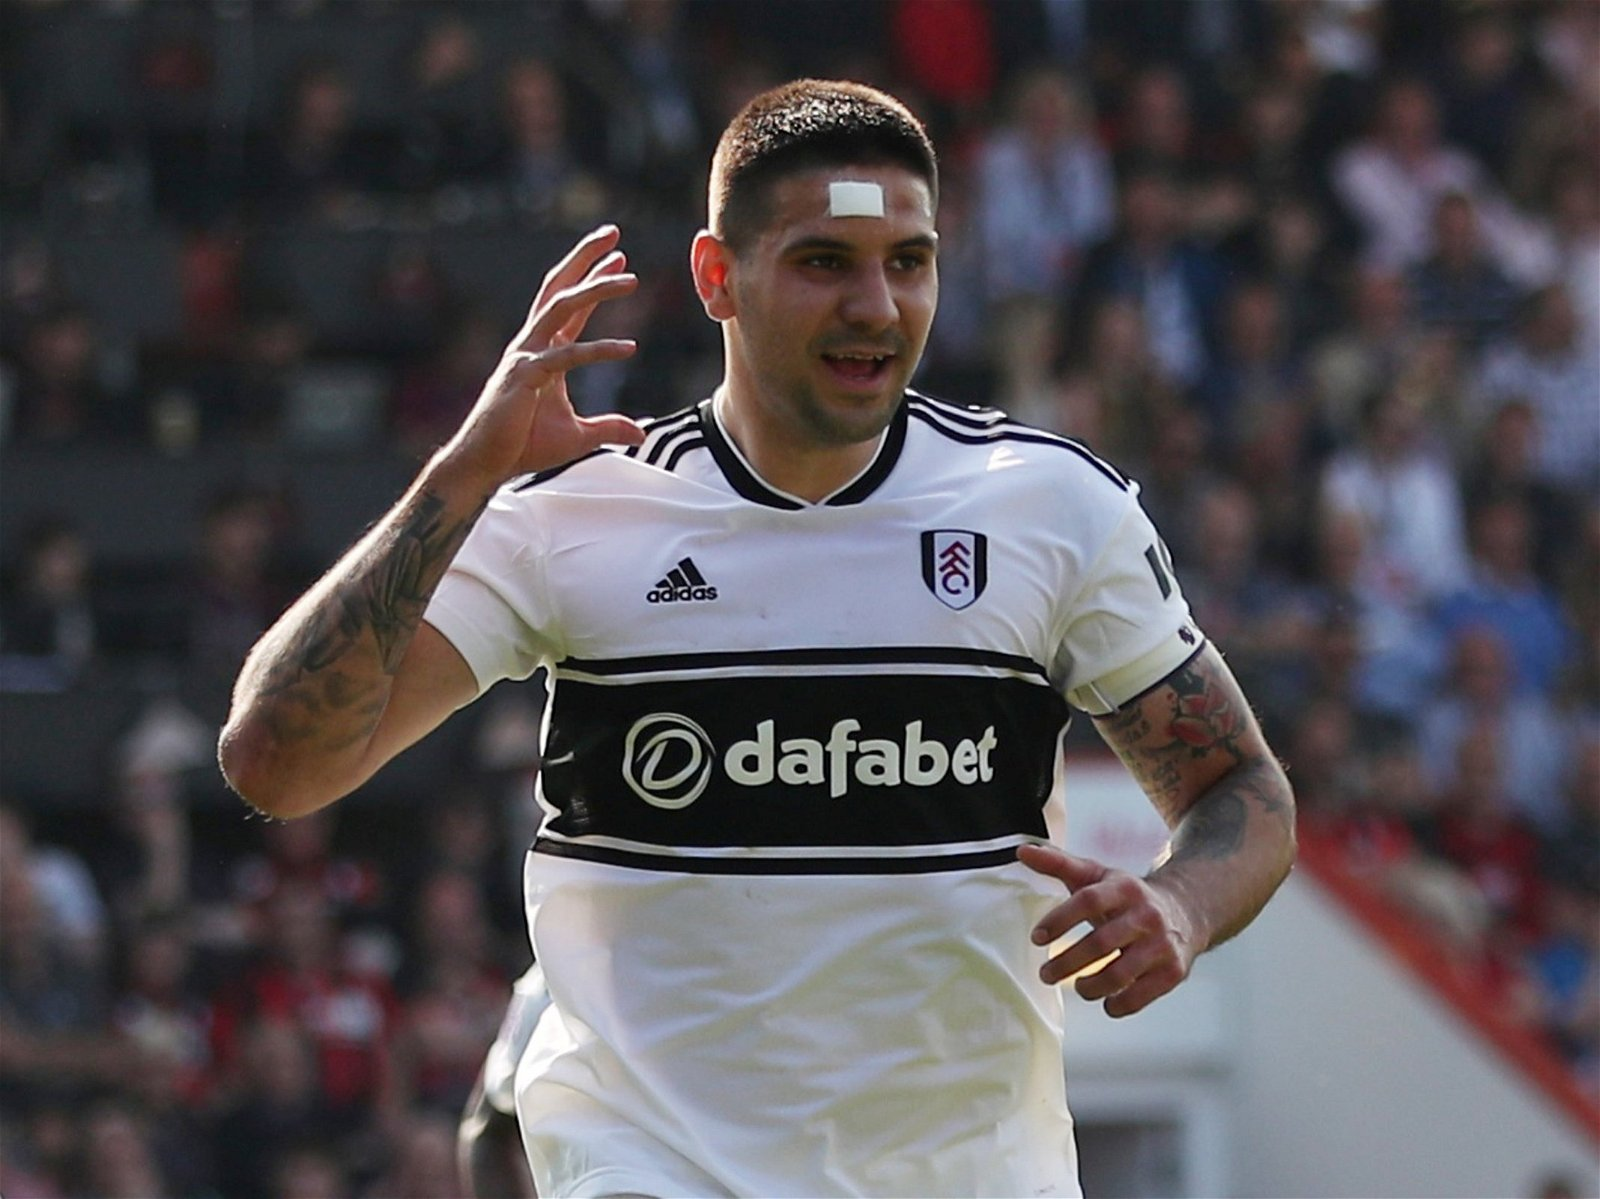 Aleksandar Mitrovic Spurs - Forget Mitrovic and Zapata: Palace could replace Benteke with shrewd £15m swoop - opinion